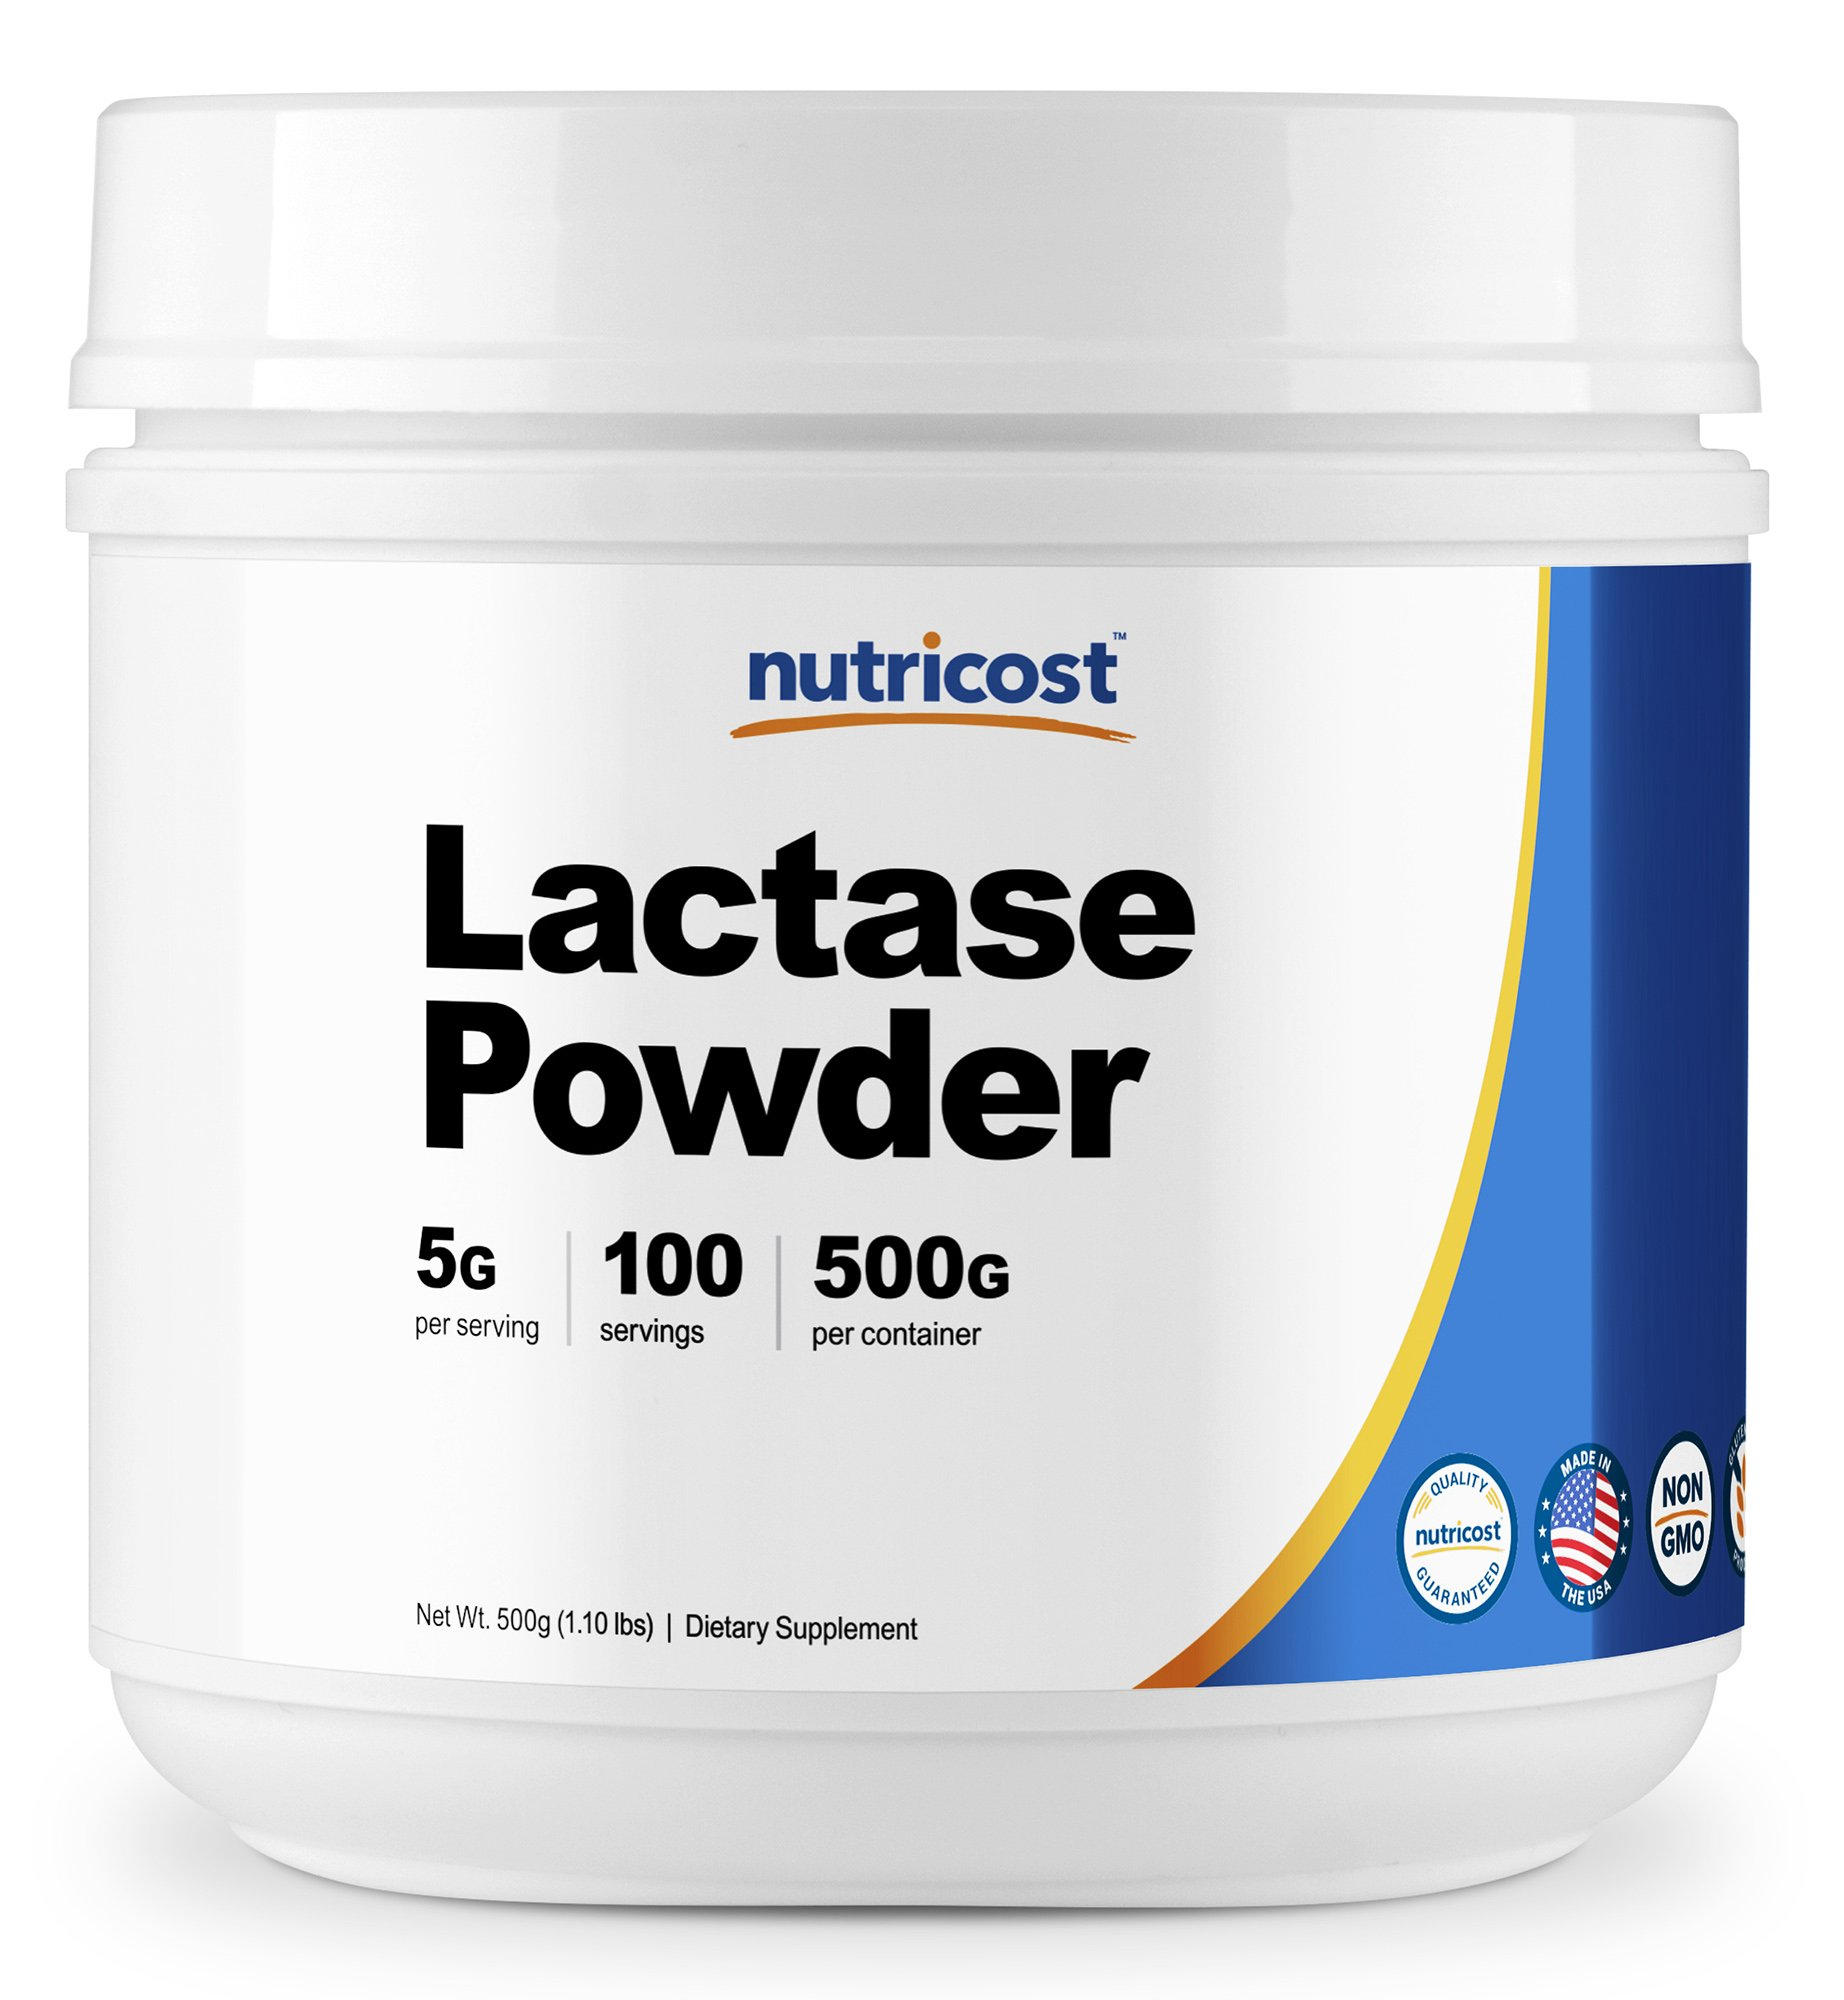 Nutricost Lactase Powder 500 Grams - Pure, Non-GMO, Gluten Free, High Quality Lactase Powder